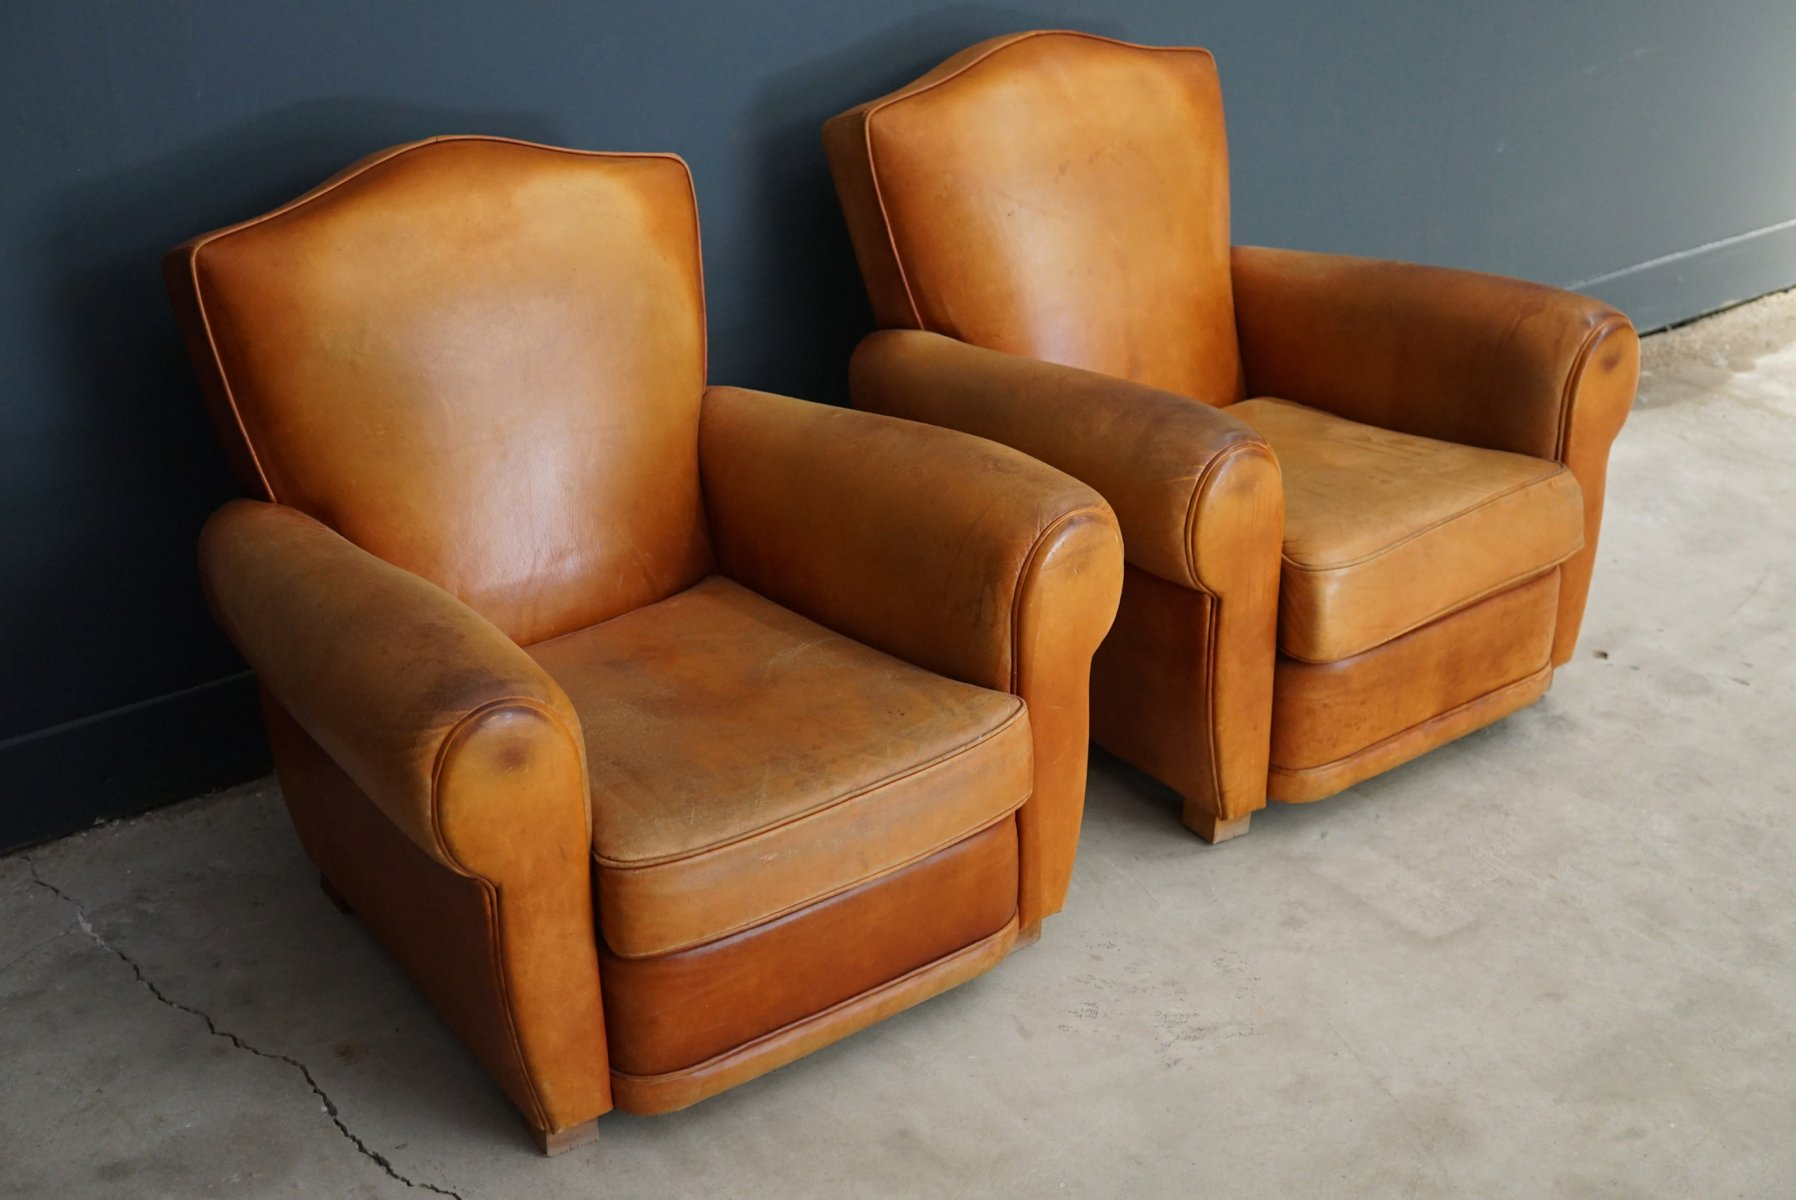 french club chairs for sale high back outdoor chair cushions australia vintage leather 1950s set of 2